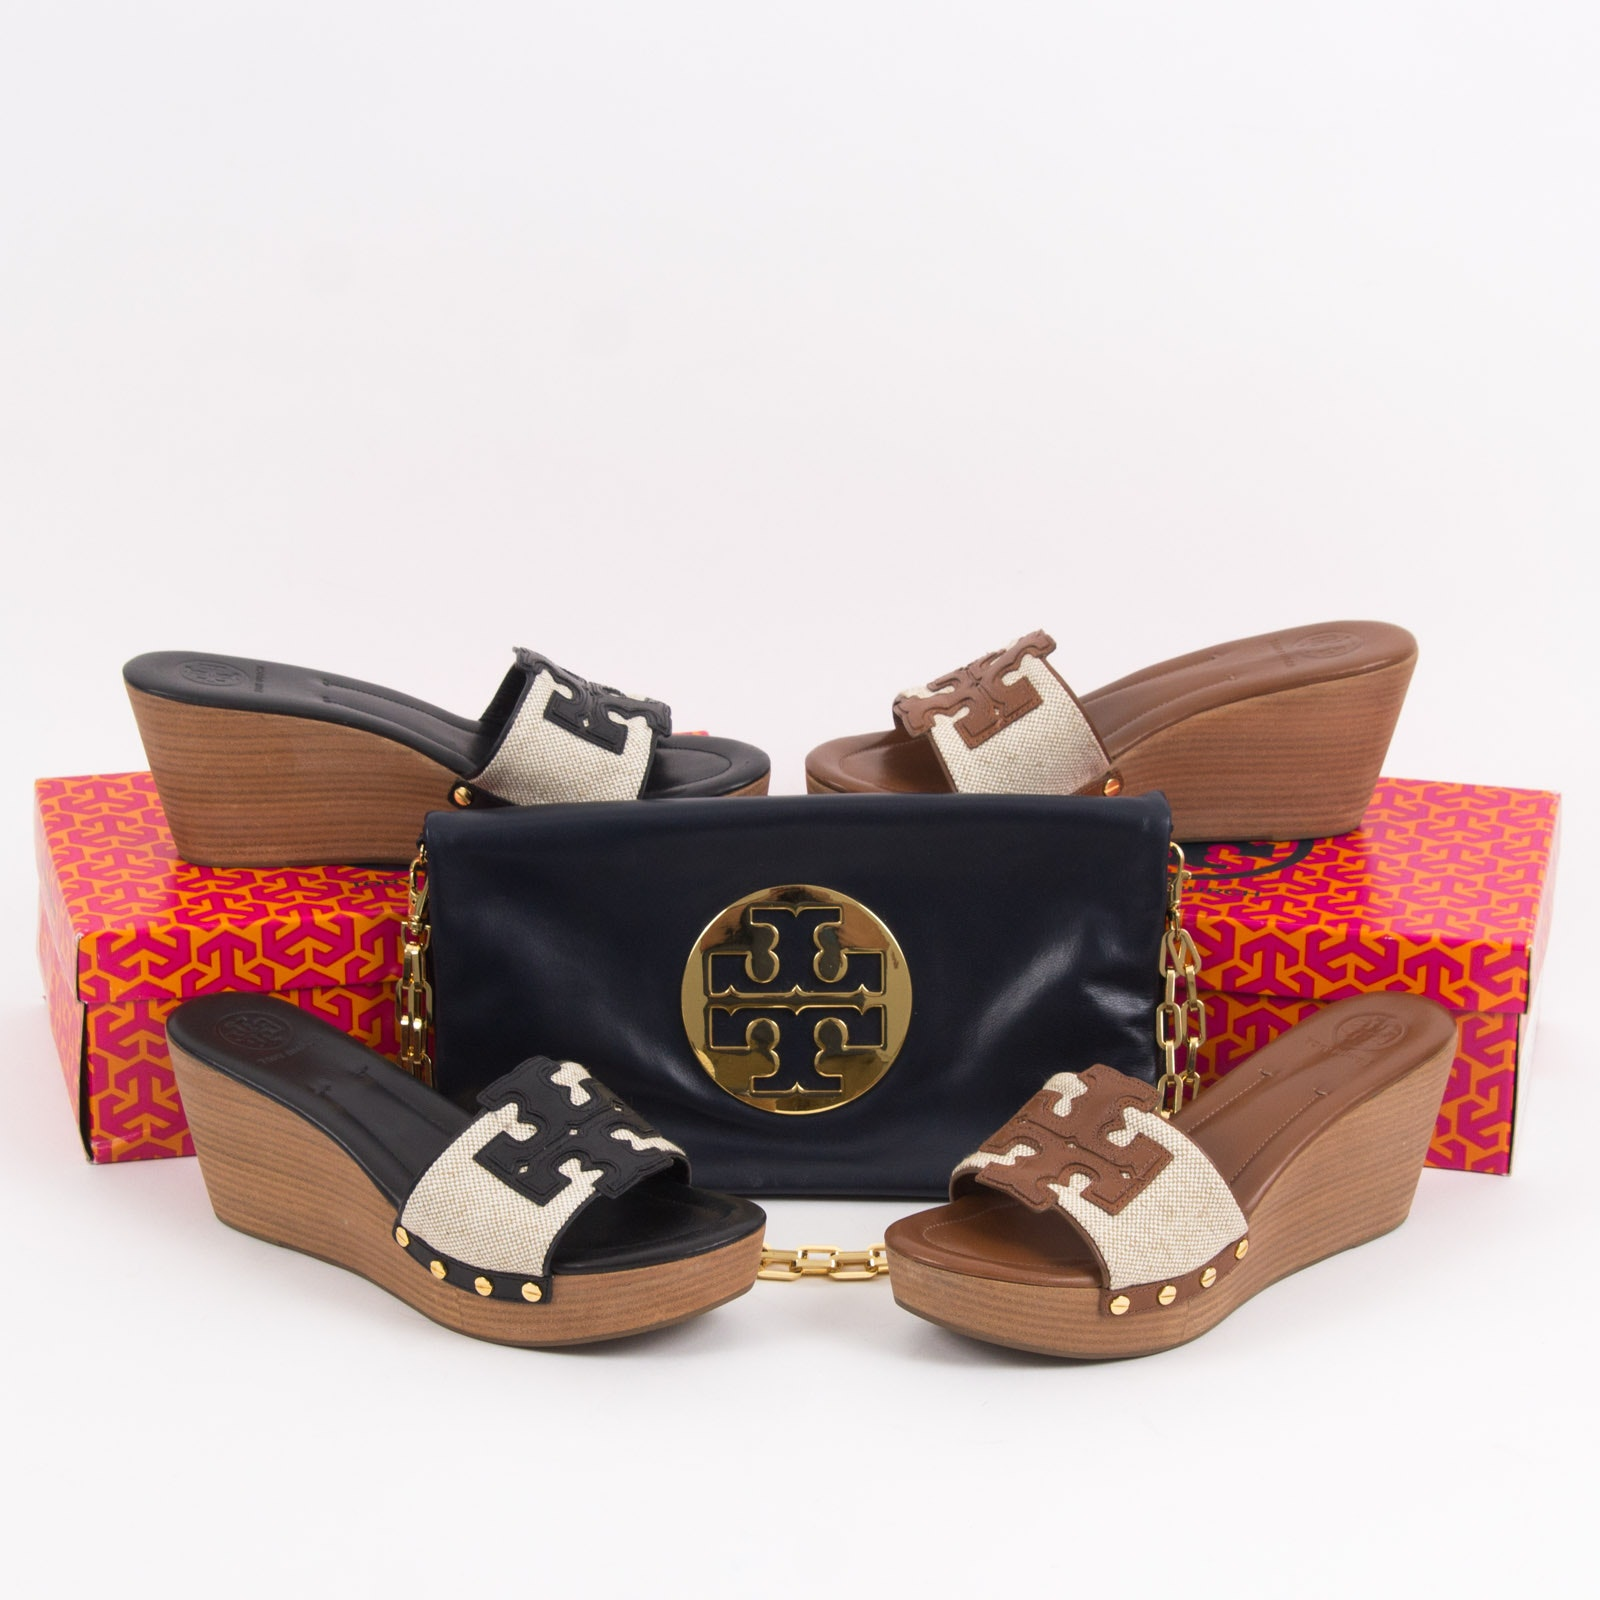 Tory Burch Shoes and Purse